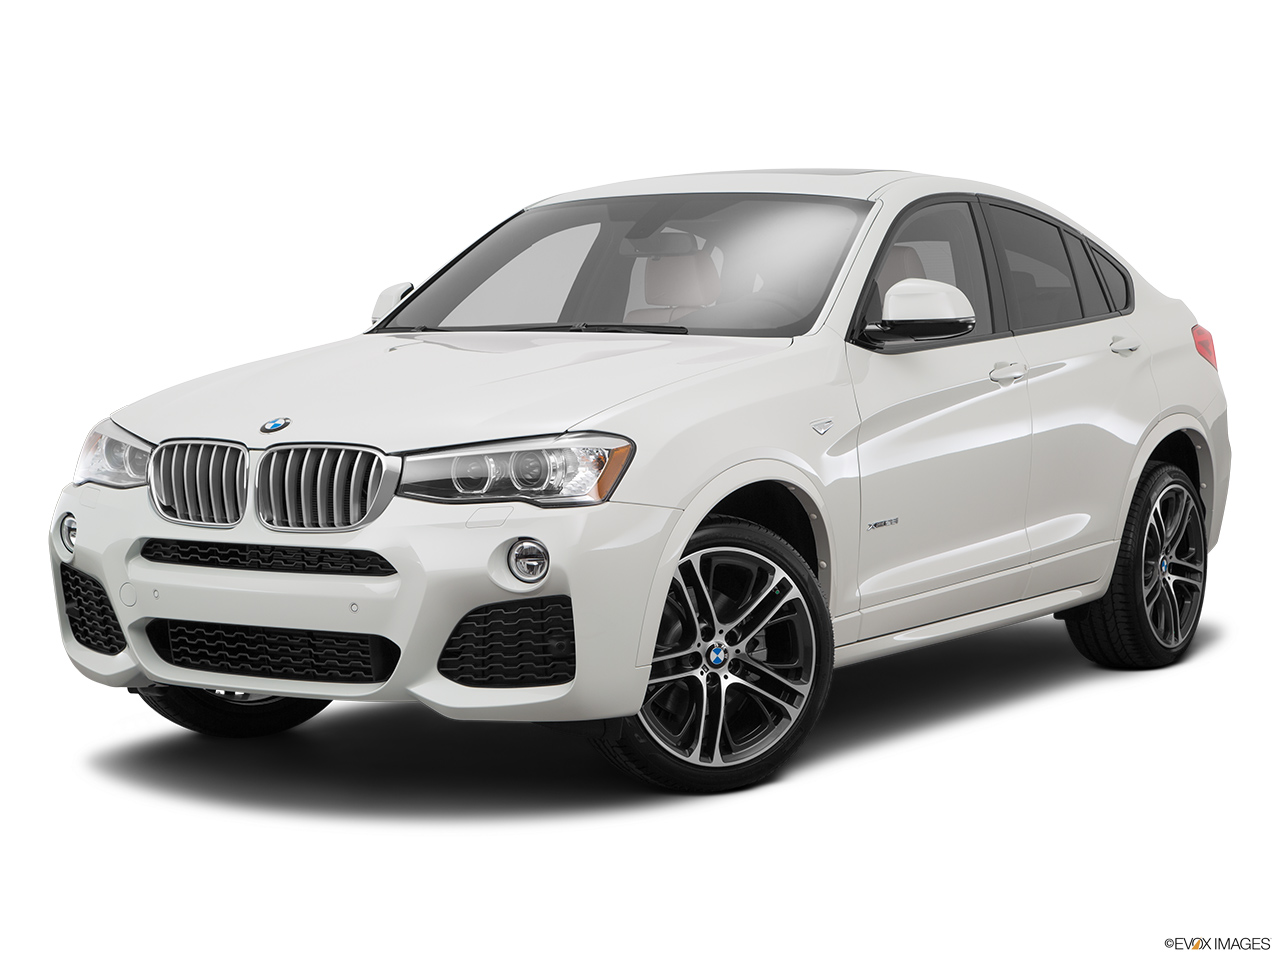 Bmw X4 2016 28i In Uae New Car Prices Specs Reviews